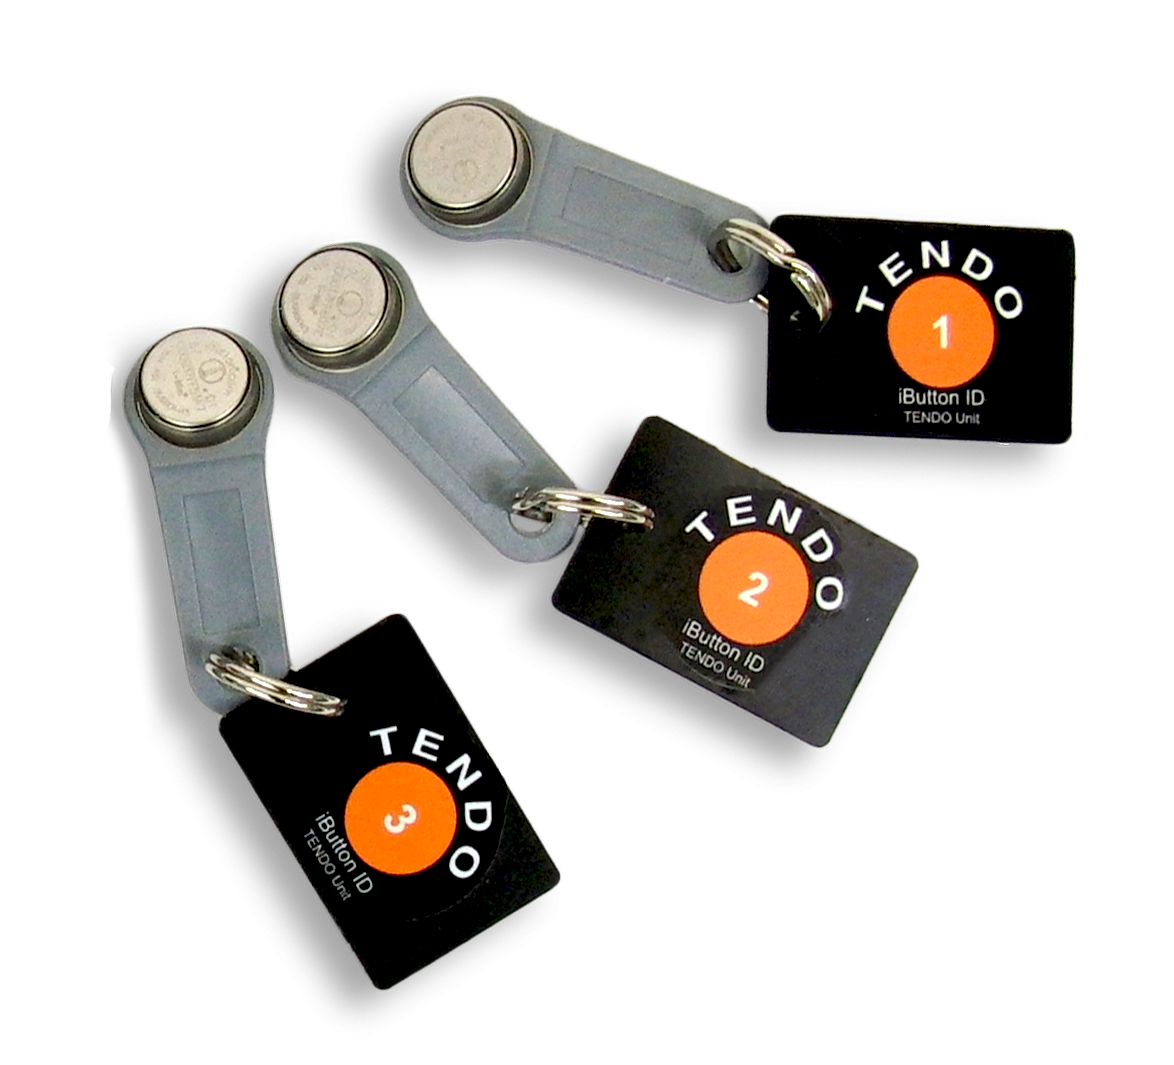 Three Tendo Unit iButton chips (RFID) by Tendo Sport for automatic athlete recognition